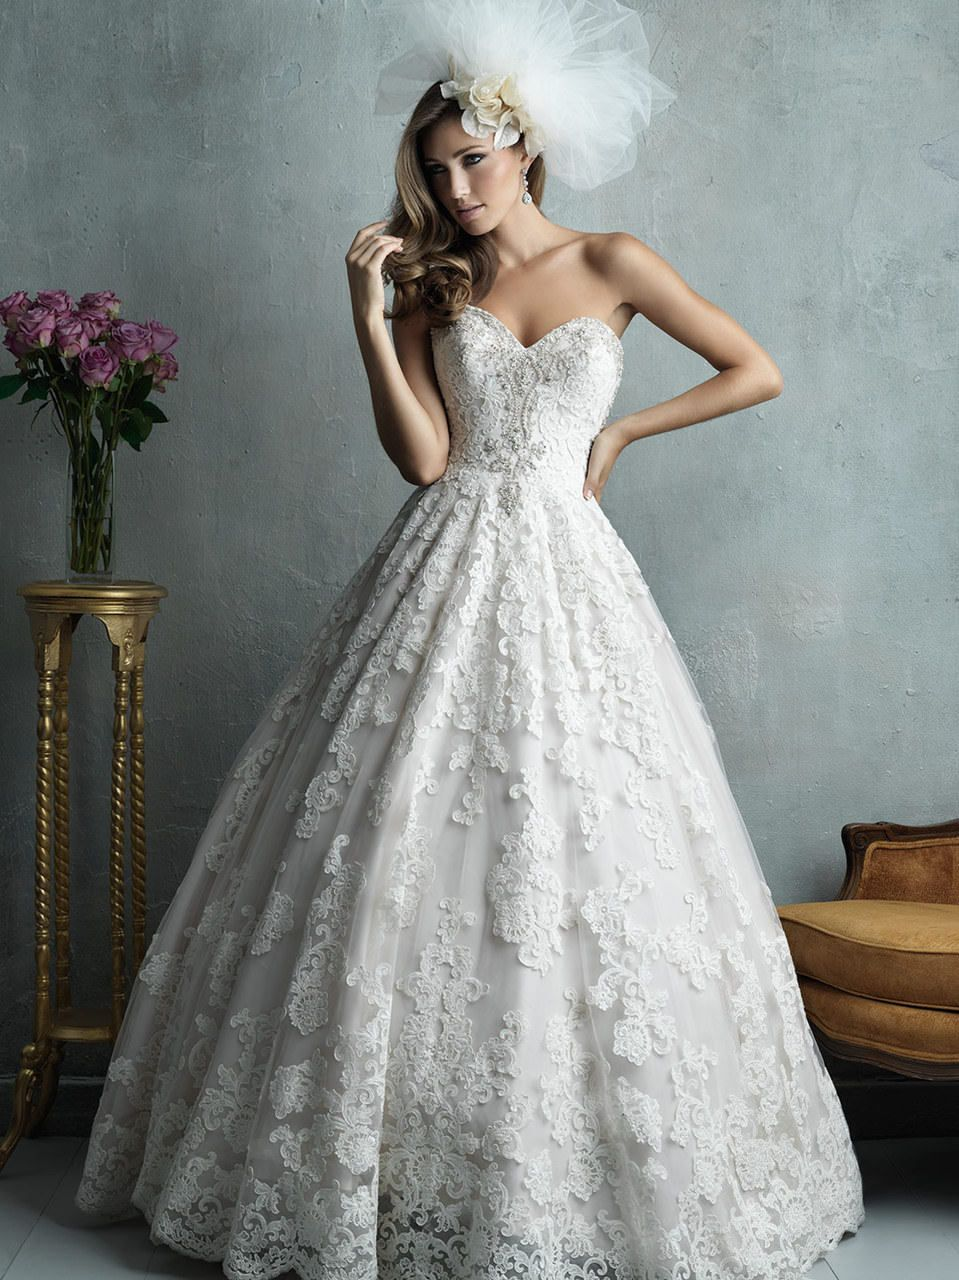 Bridals by lori allure couture bridals 0127532 call for pricing explore couture wedding dresses couture bridal and more ombrellifo Images